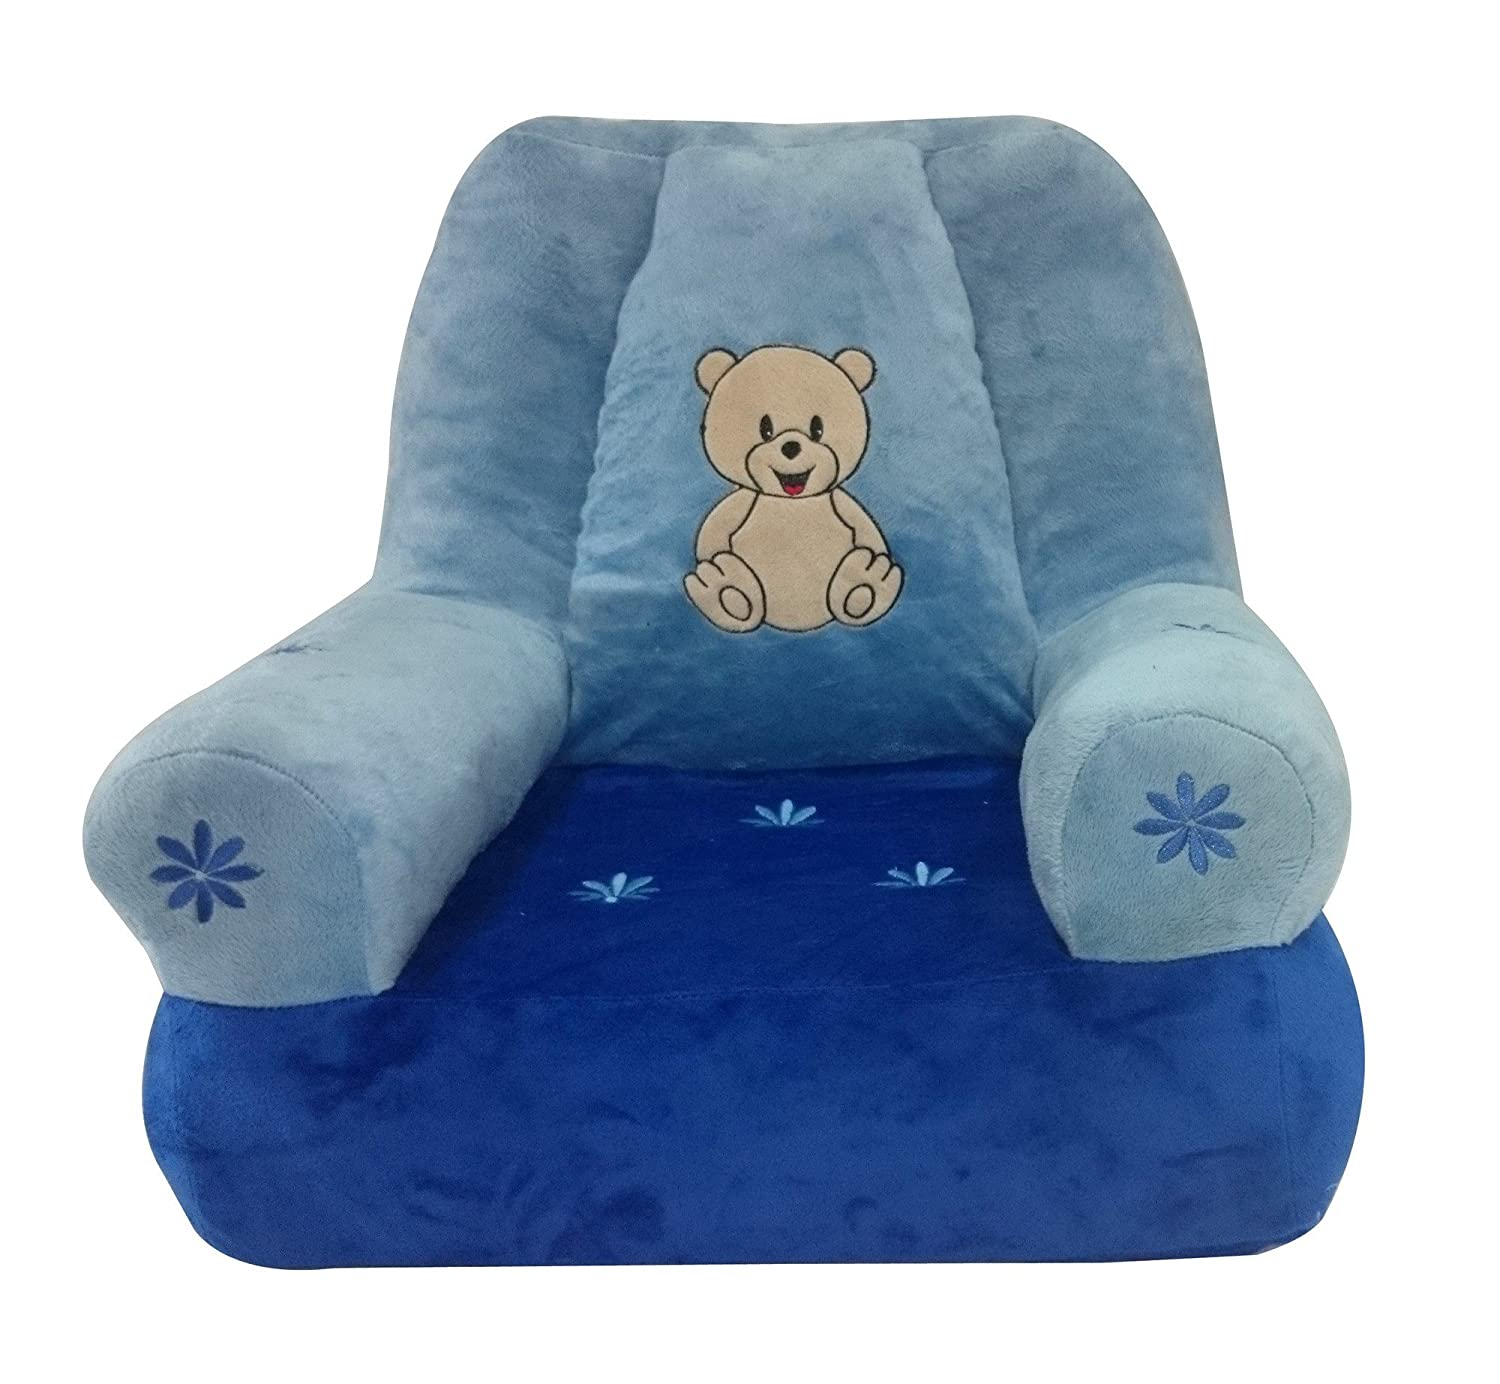 Soft Buddies Baby Chair Brown 18 Inch